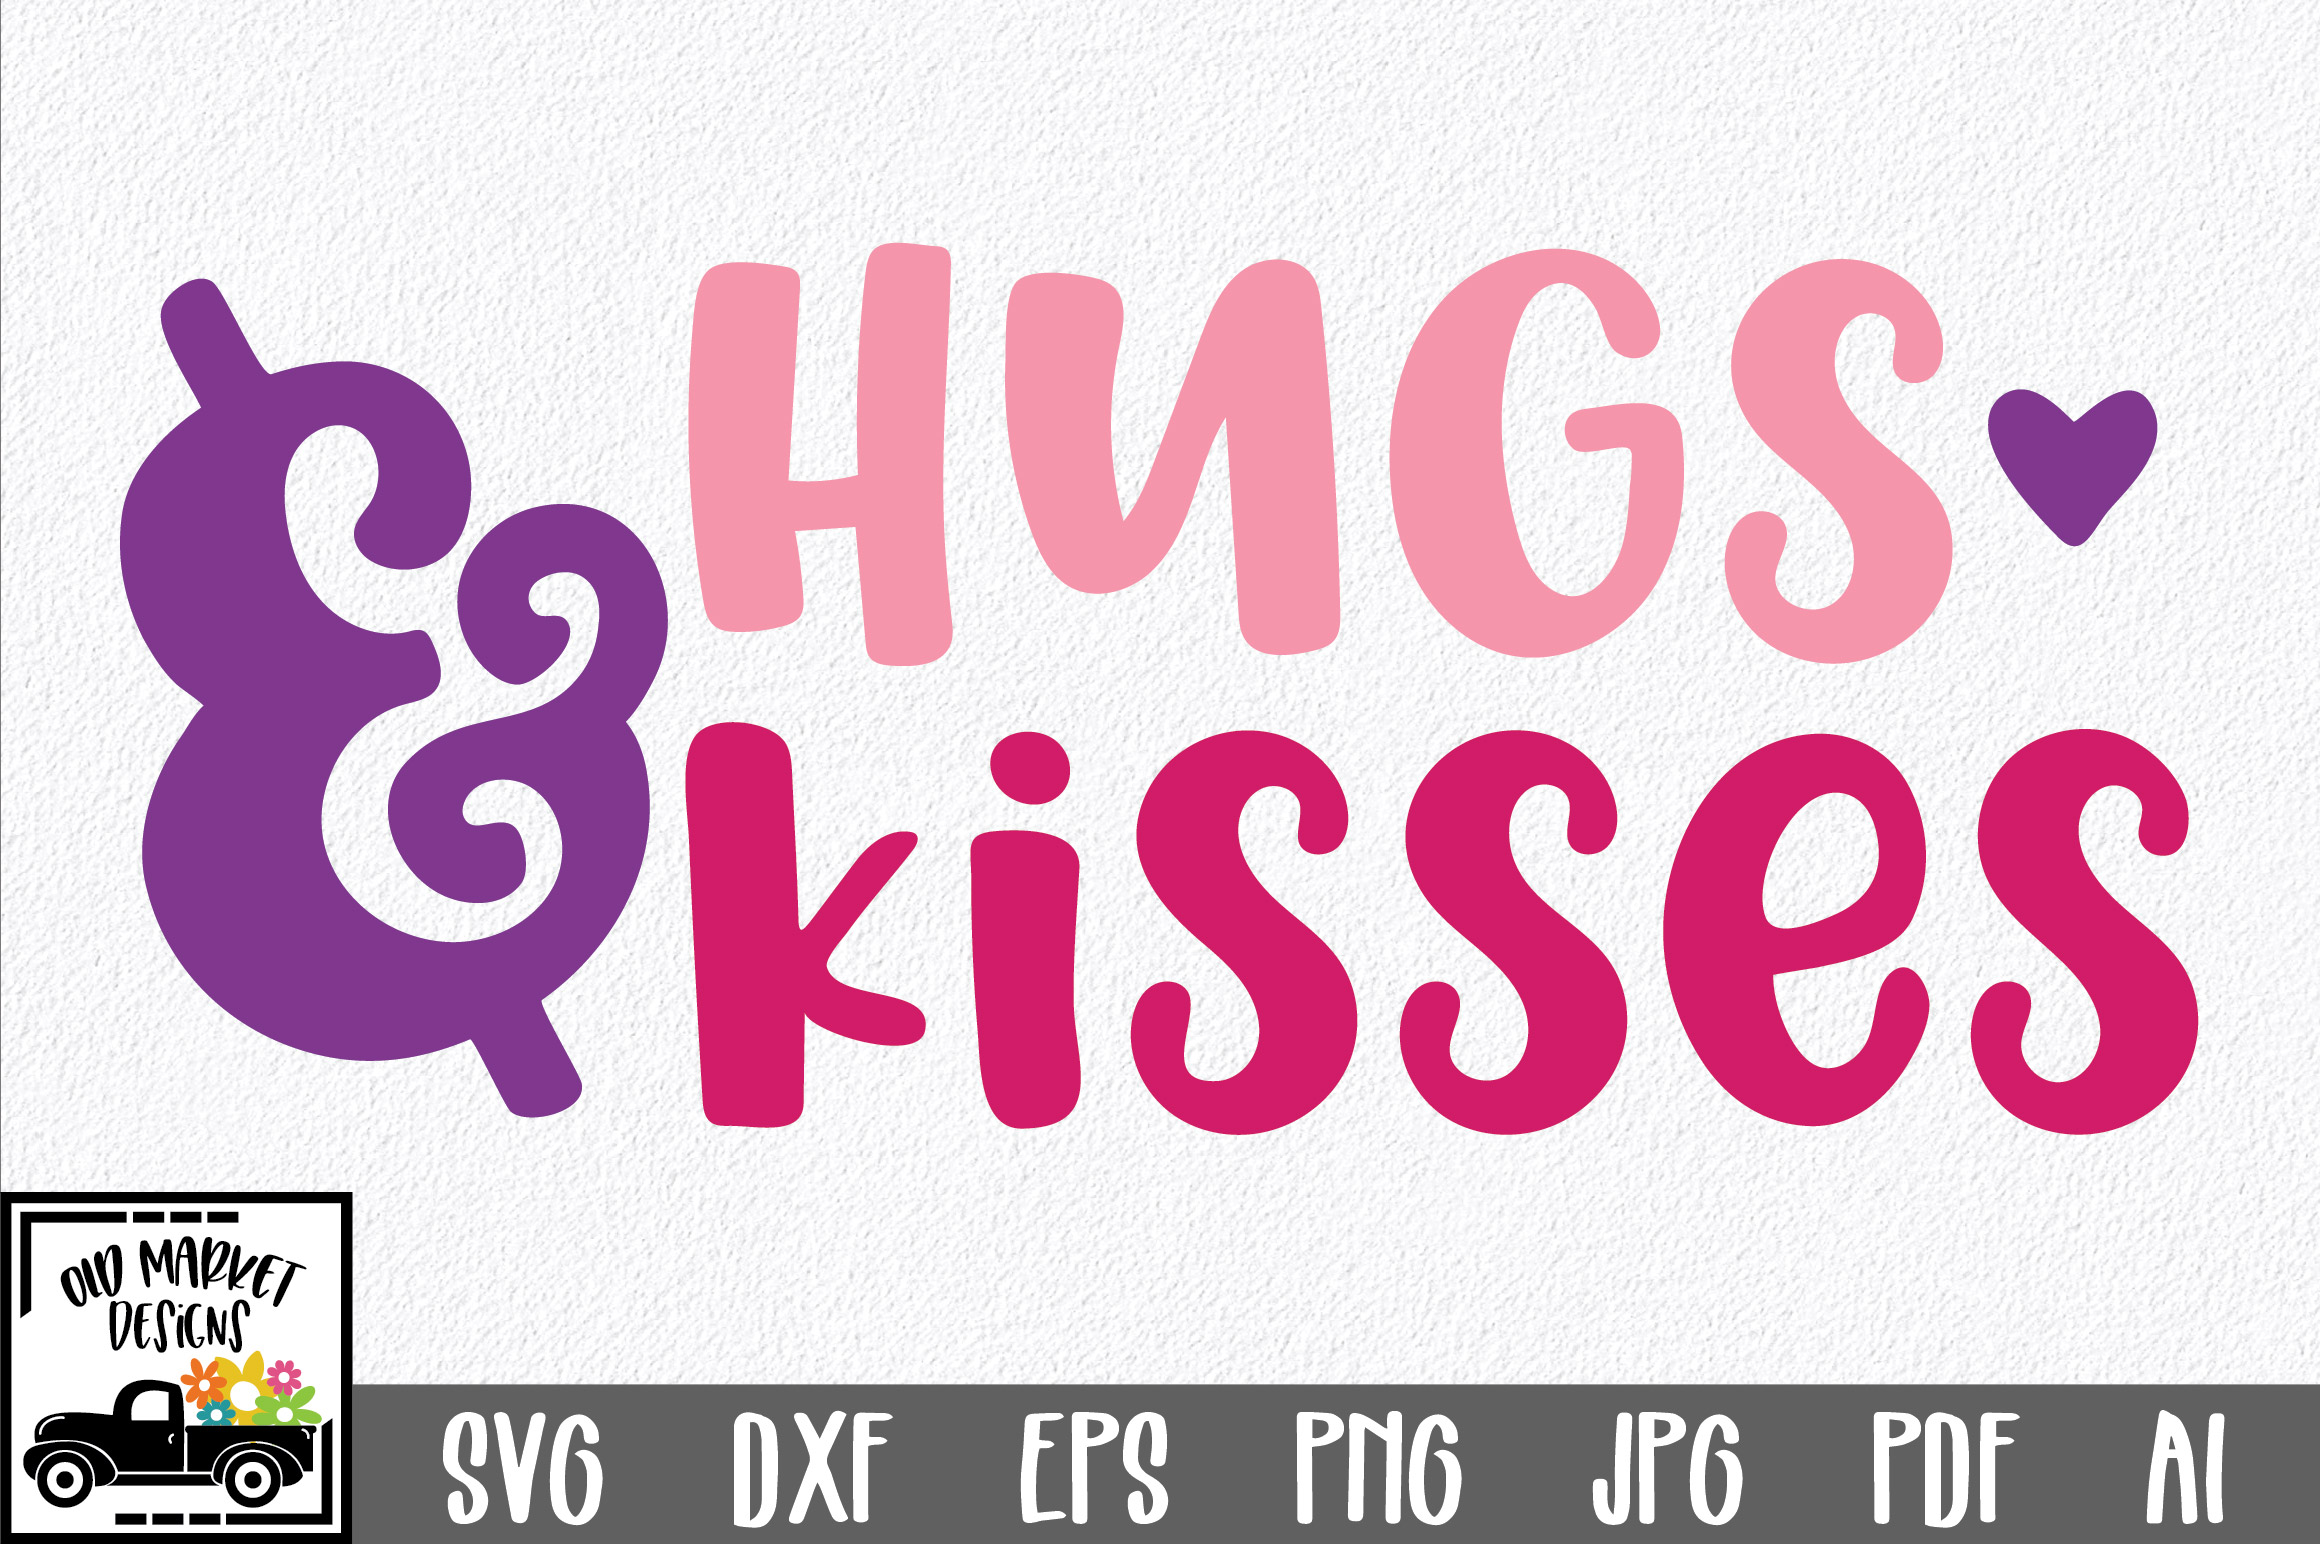 Download Free Hugs Kisses Valentine Graphic By Oldmarketdesigns Creative Fabrica for Cricut Explore, Silhouette and other cutting machines.